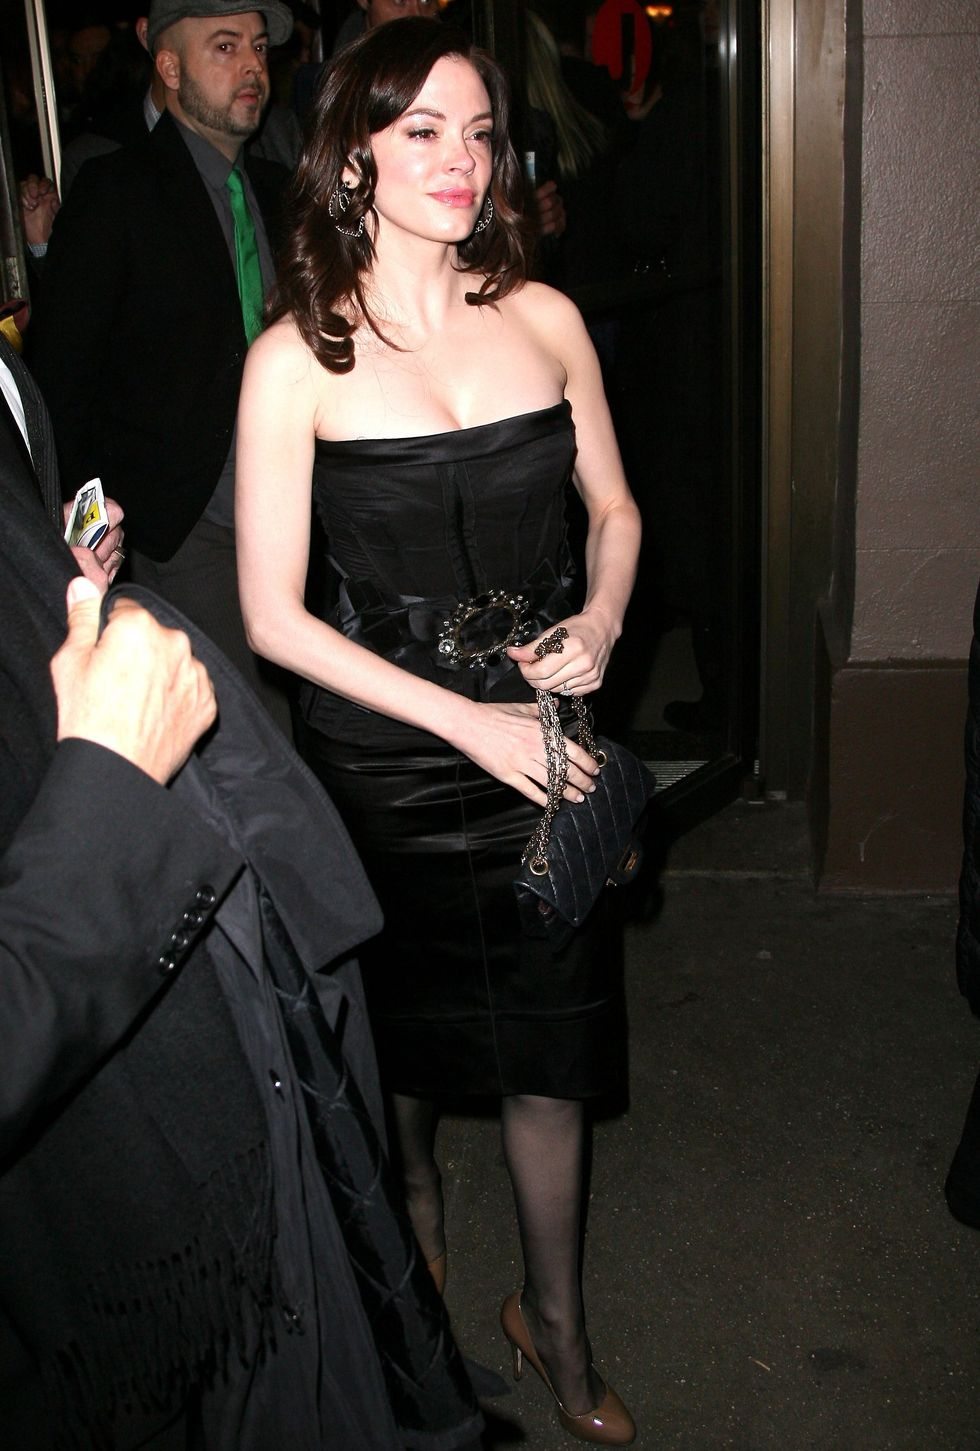 rose-mcgowan-33-variations-broadway-play-in-new-york-01